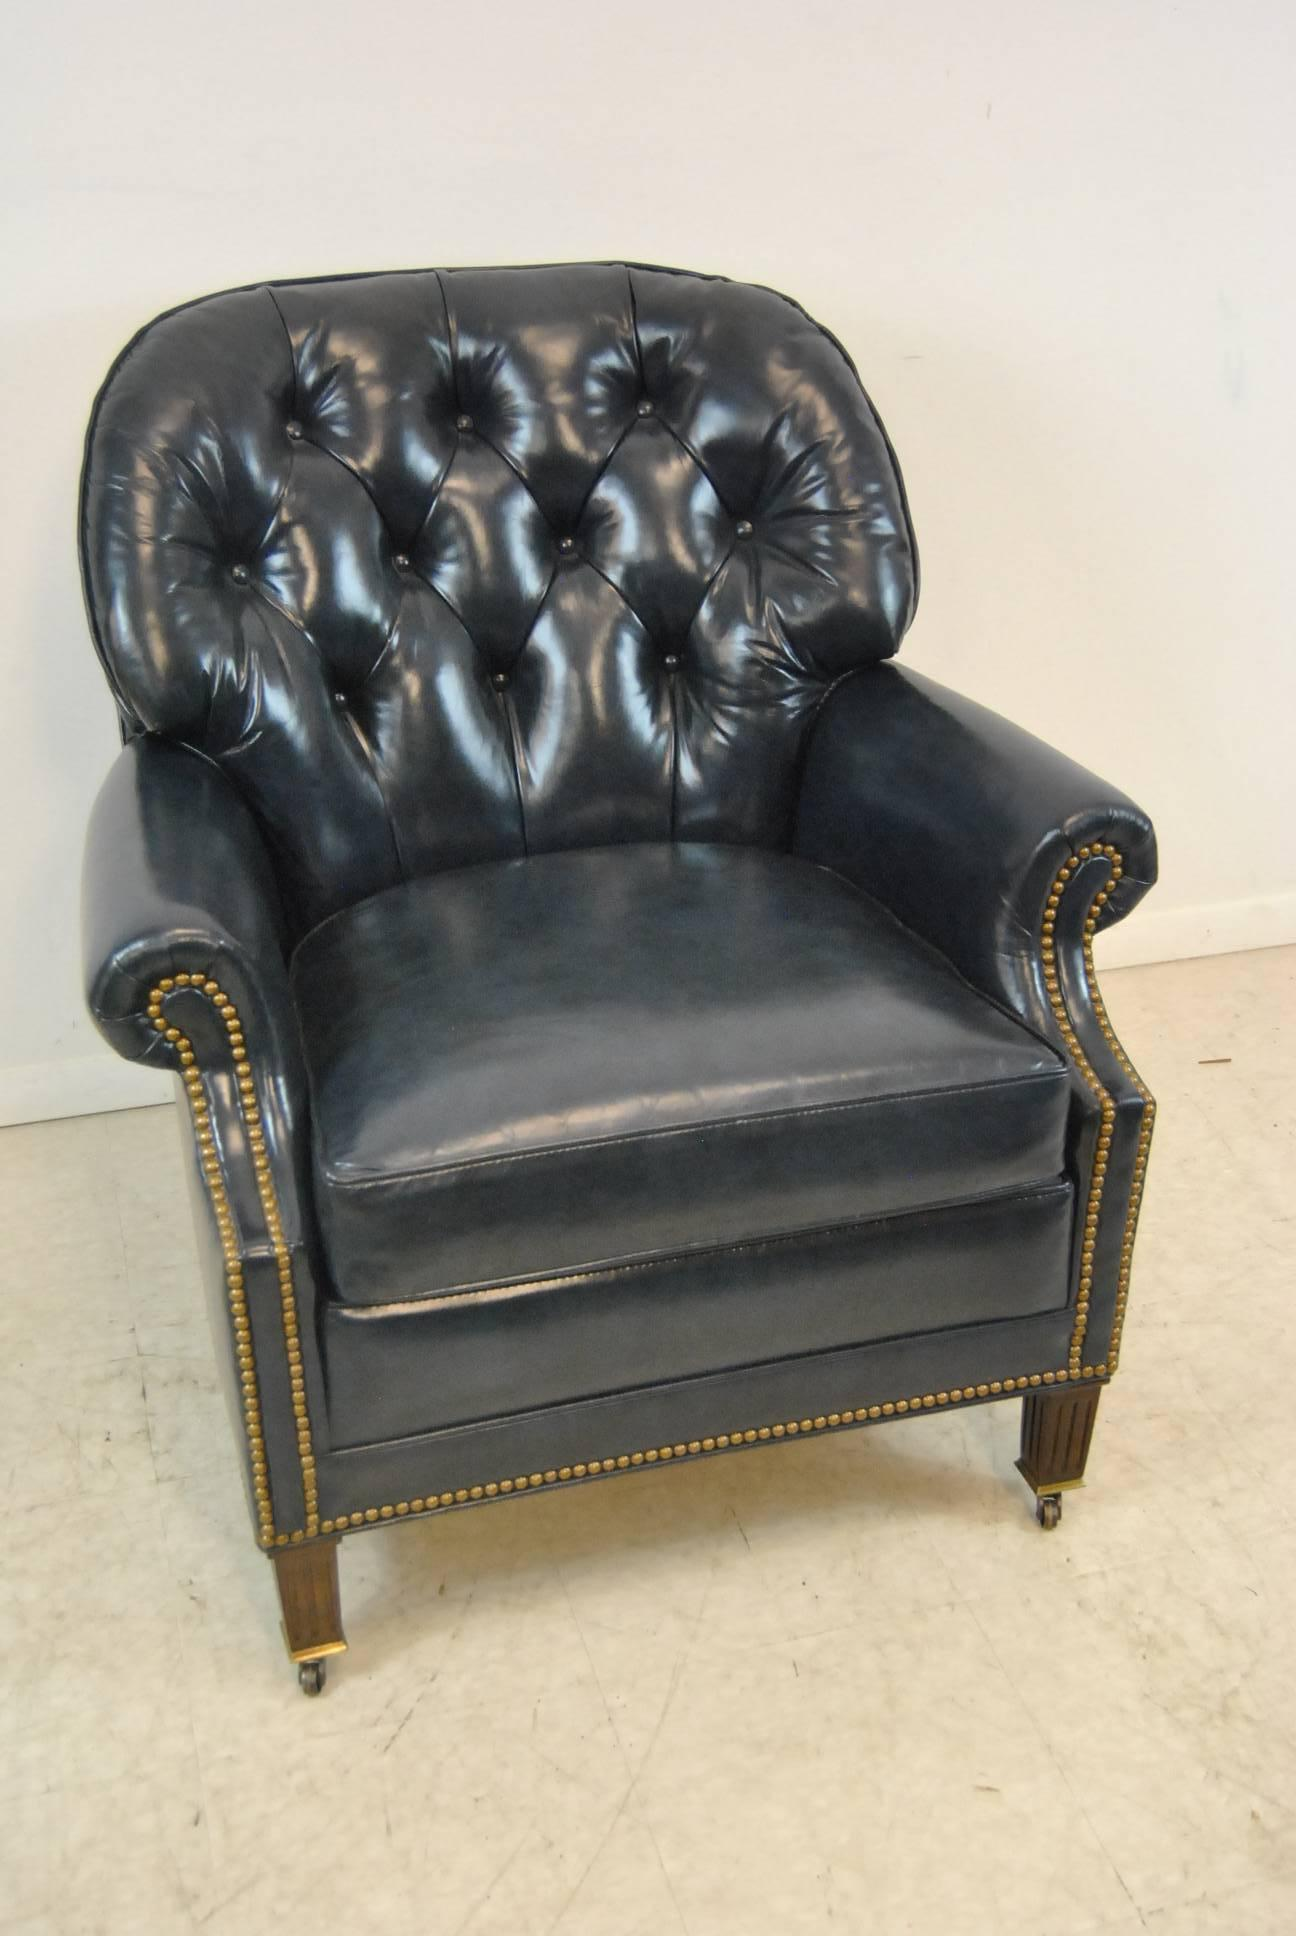 A Very Handsome Leather Chair And Ottoman By Hancock U0026 Moore. This Tufted  Chair And